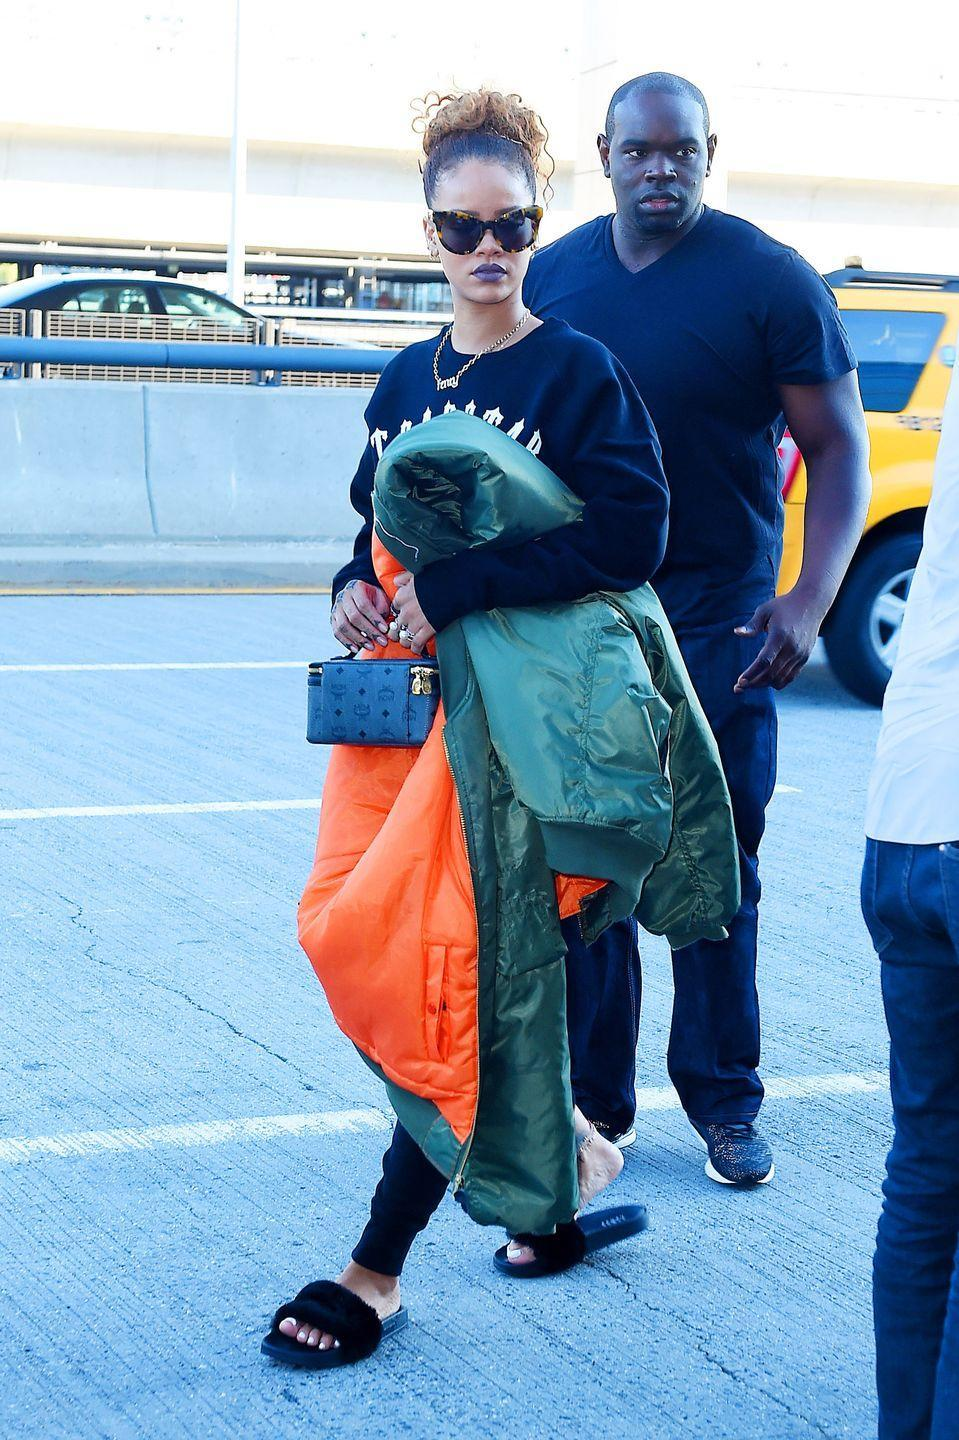 <p>Although classic Adidas slides made a huge comeback, more dressed-up versions, including ones with furry or embellished details on the strap, also became popular. Rihanna got in on the luxe-but-casual trend while out in New York City. </p>